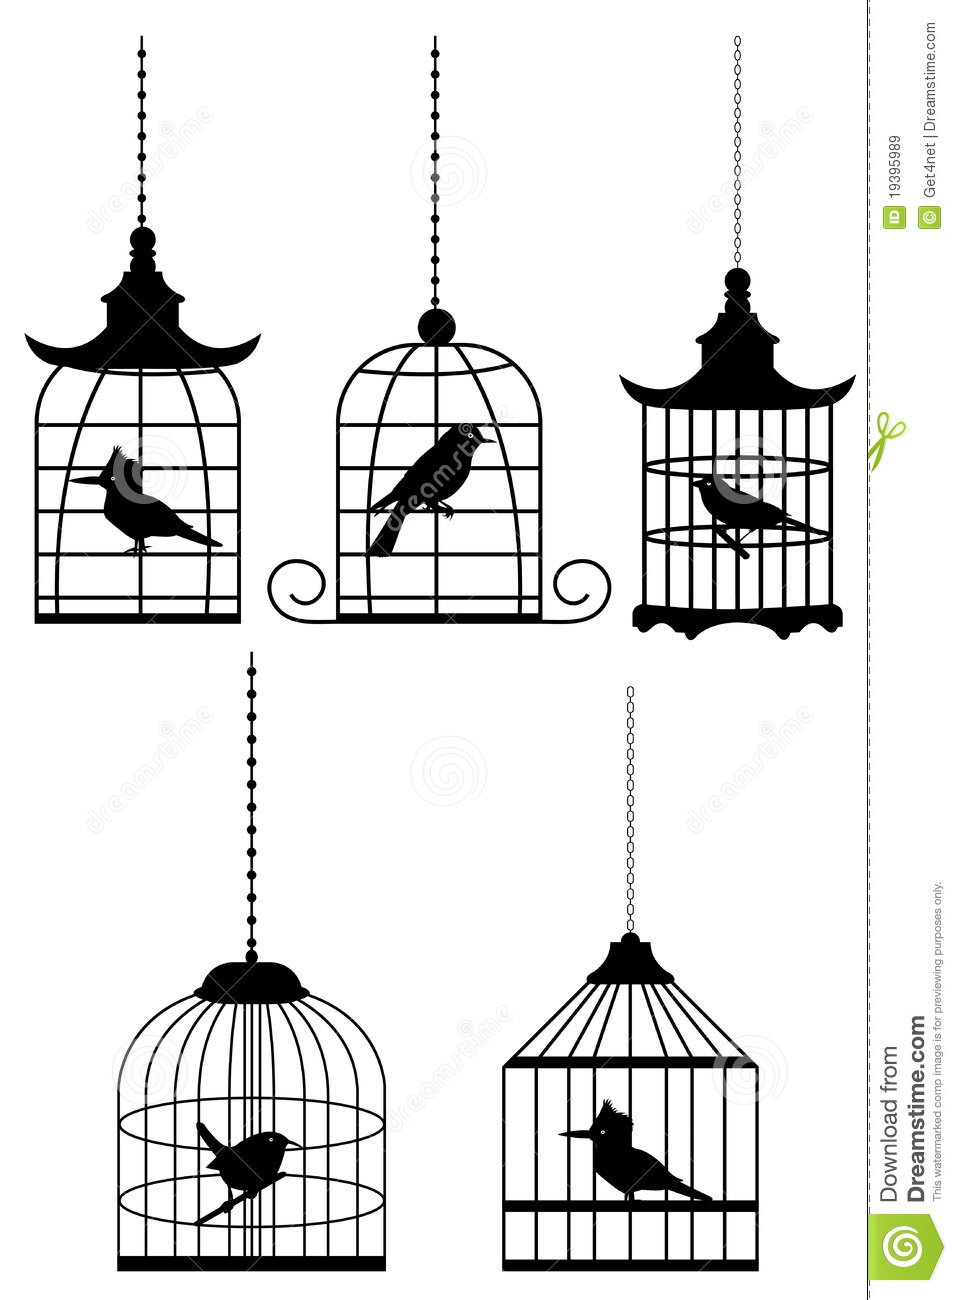 oiseau dans la cage illustration de vecteur illustration du birdcage 19395989. Black Bedroom Furniture Sets. Home Design Ideas